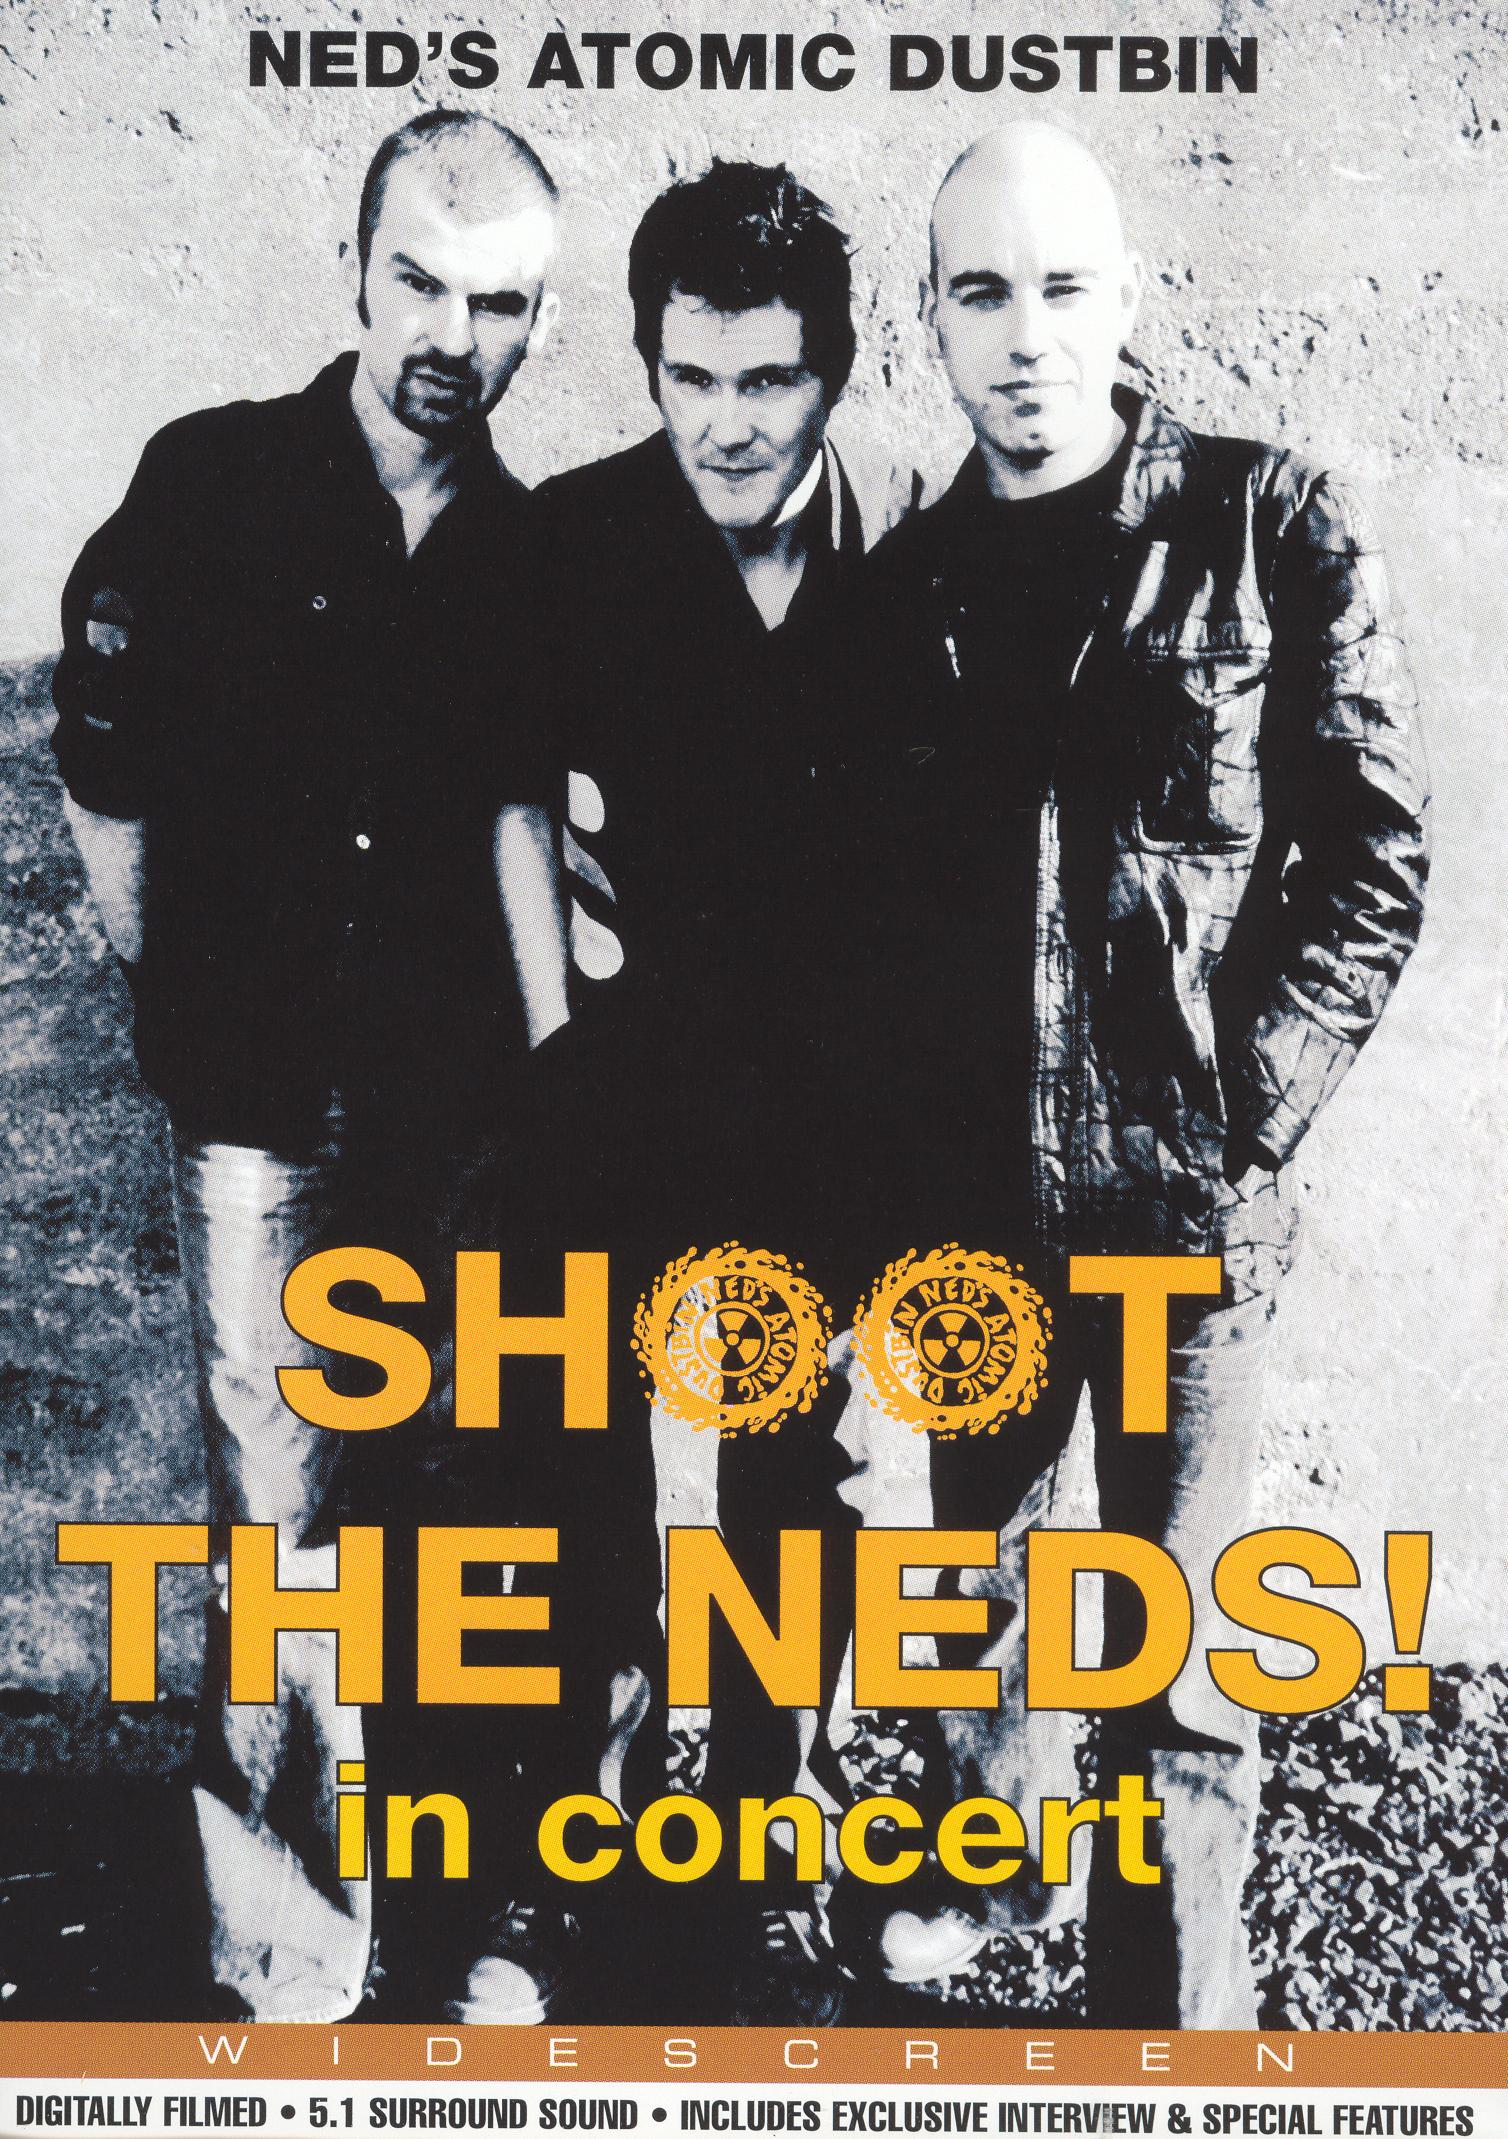 Ned's Atomic Dustbin: Shoot the Neds! in Concert